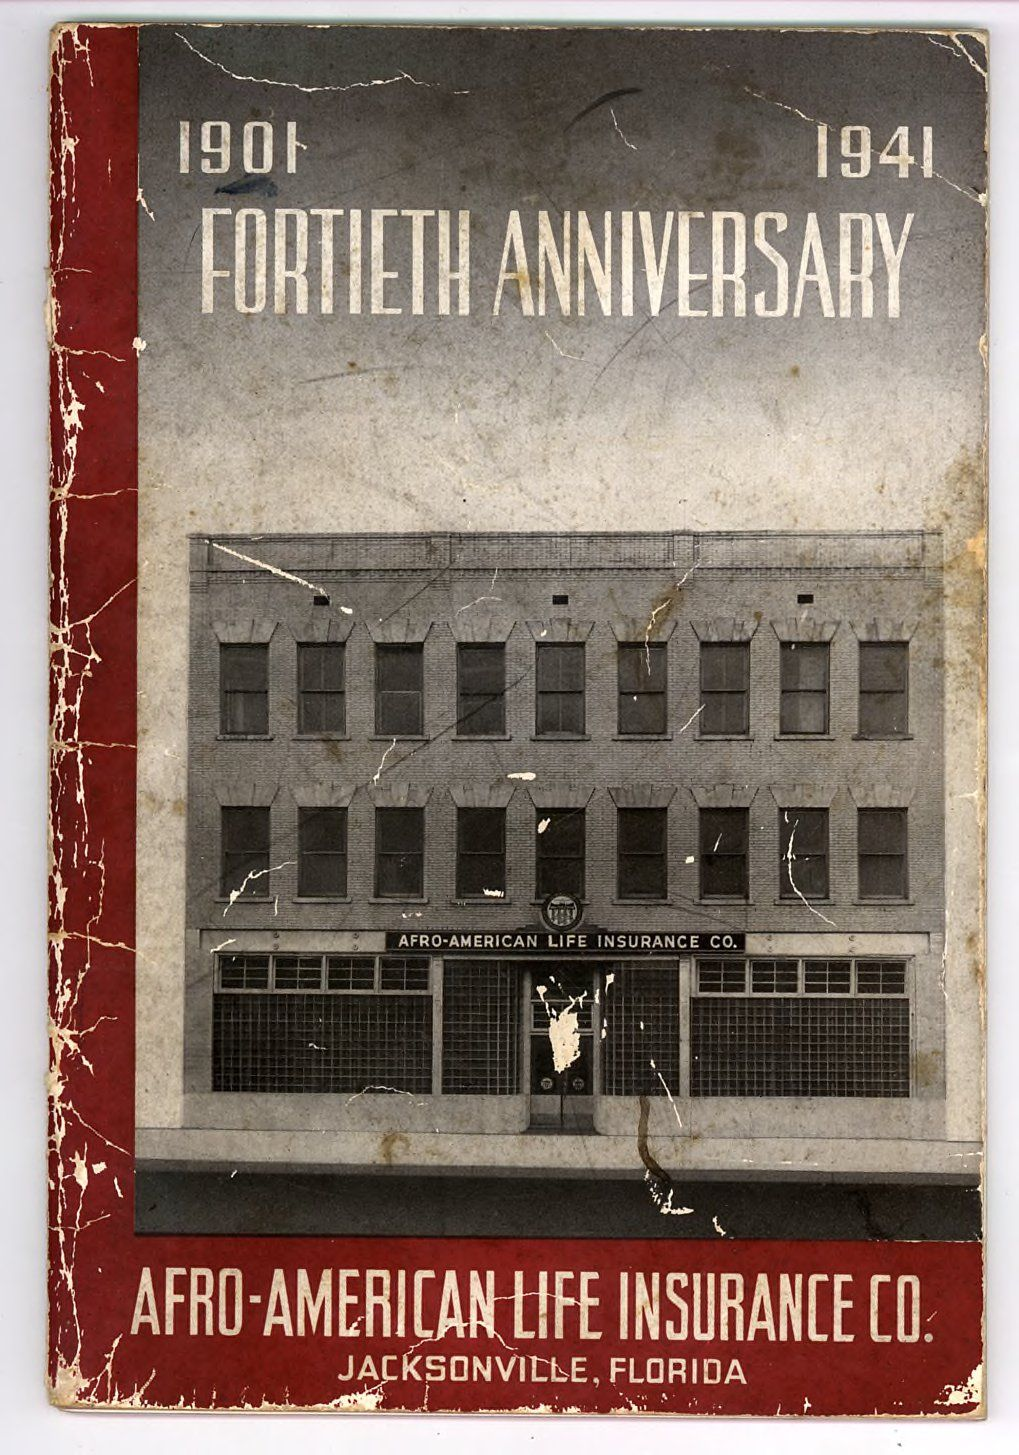 19011941, fortieth anniversary, AfroAmerican Life